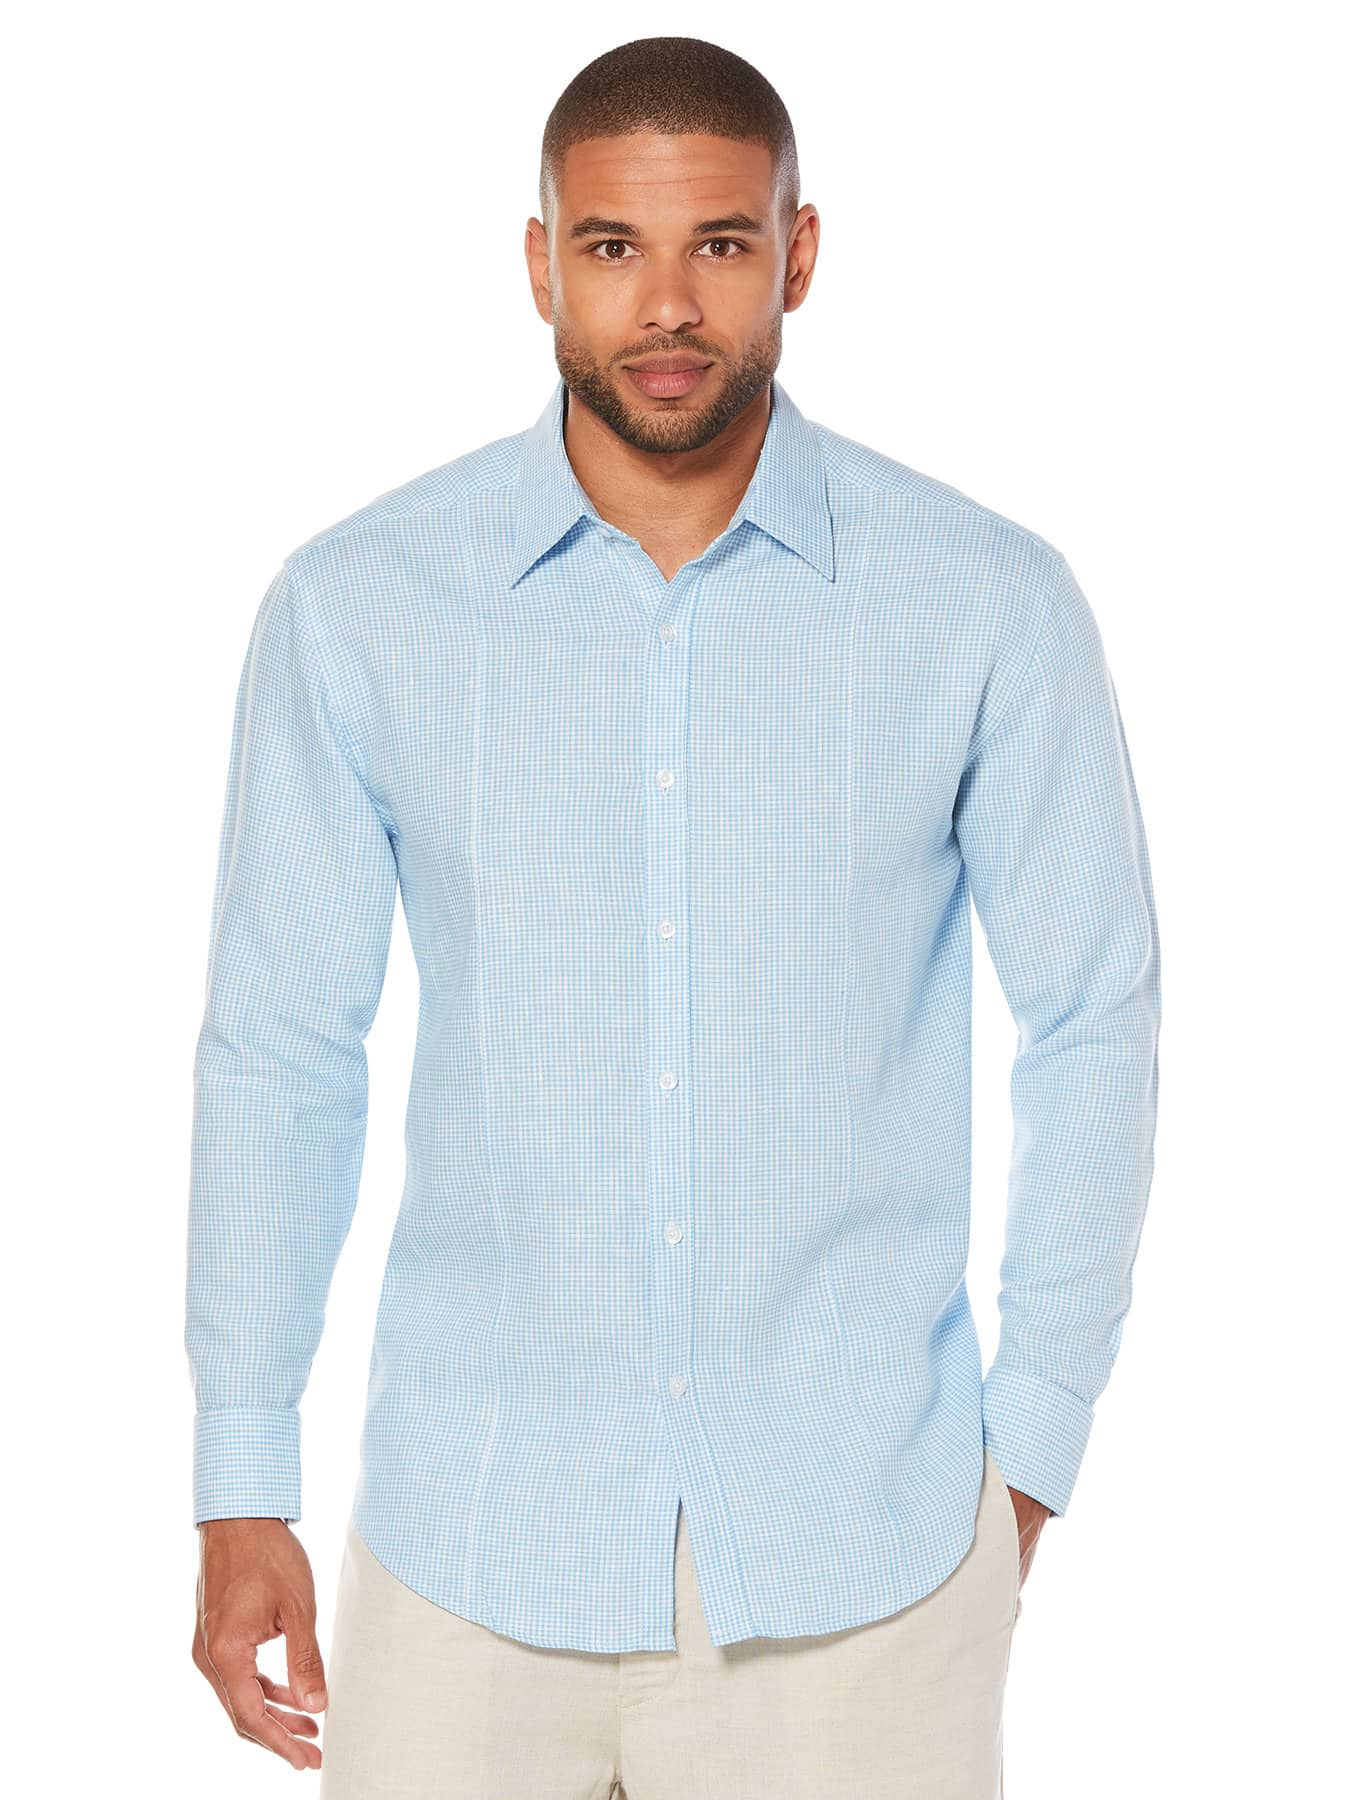 Cubavera 40% off Sitewide + Extra 20% off Coupon: Men's 100% Linen Pants $19, Linen Short Sleeve Shirt $19, Linen Long Sleeve Shirt $23.99, Gingham 2-Pocket Guayabera $26 & more